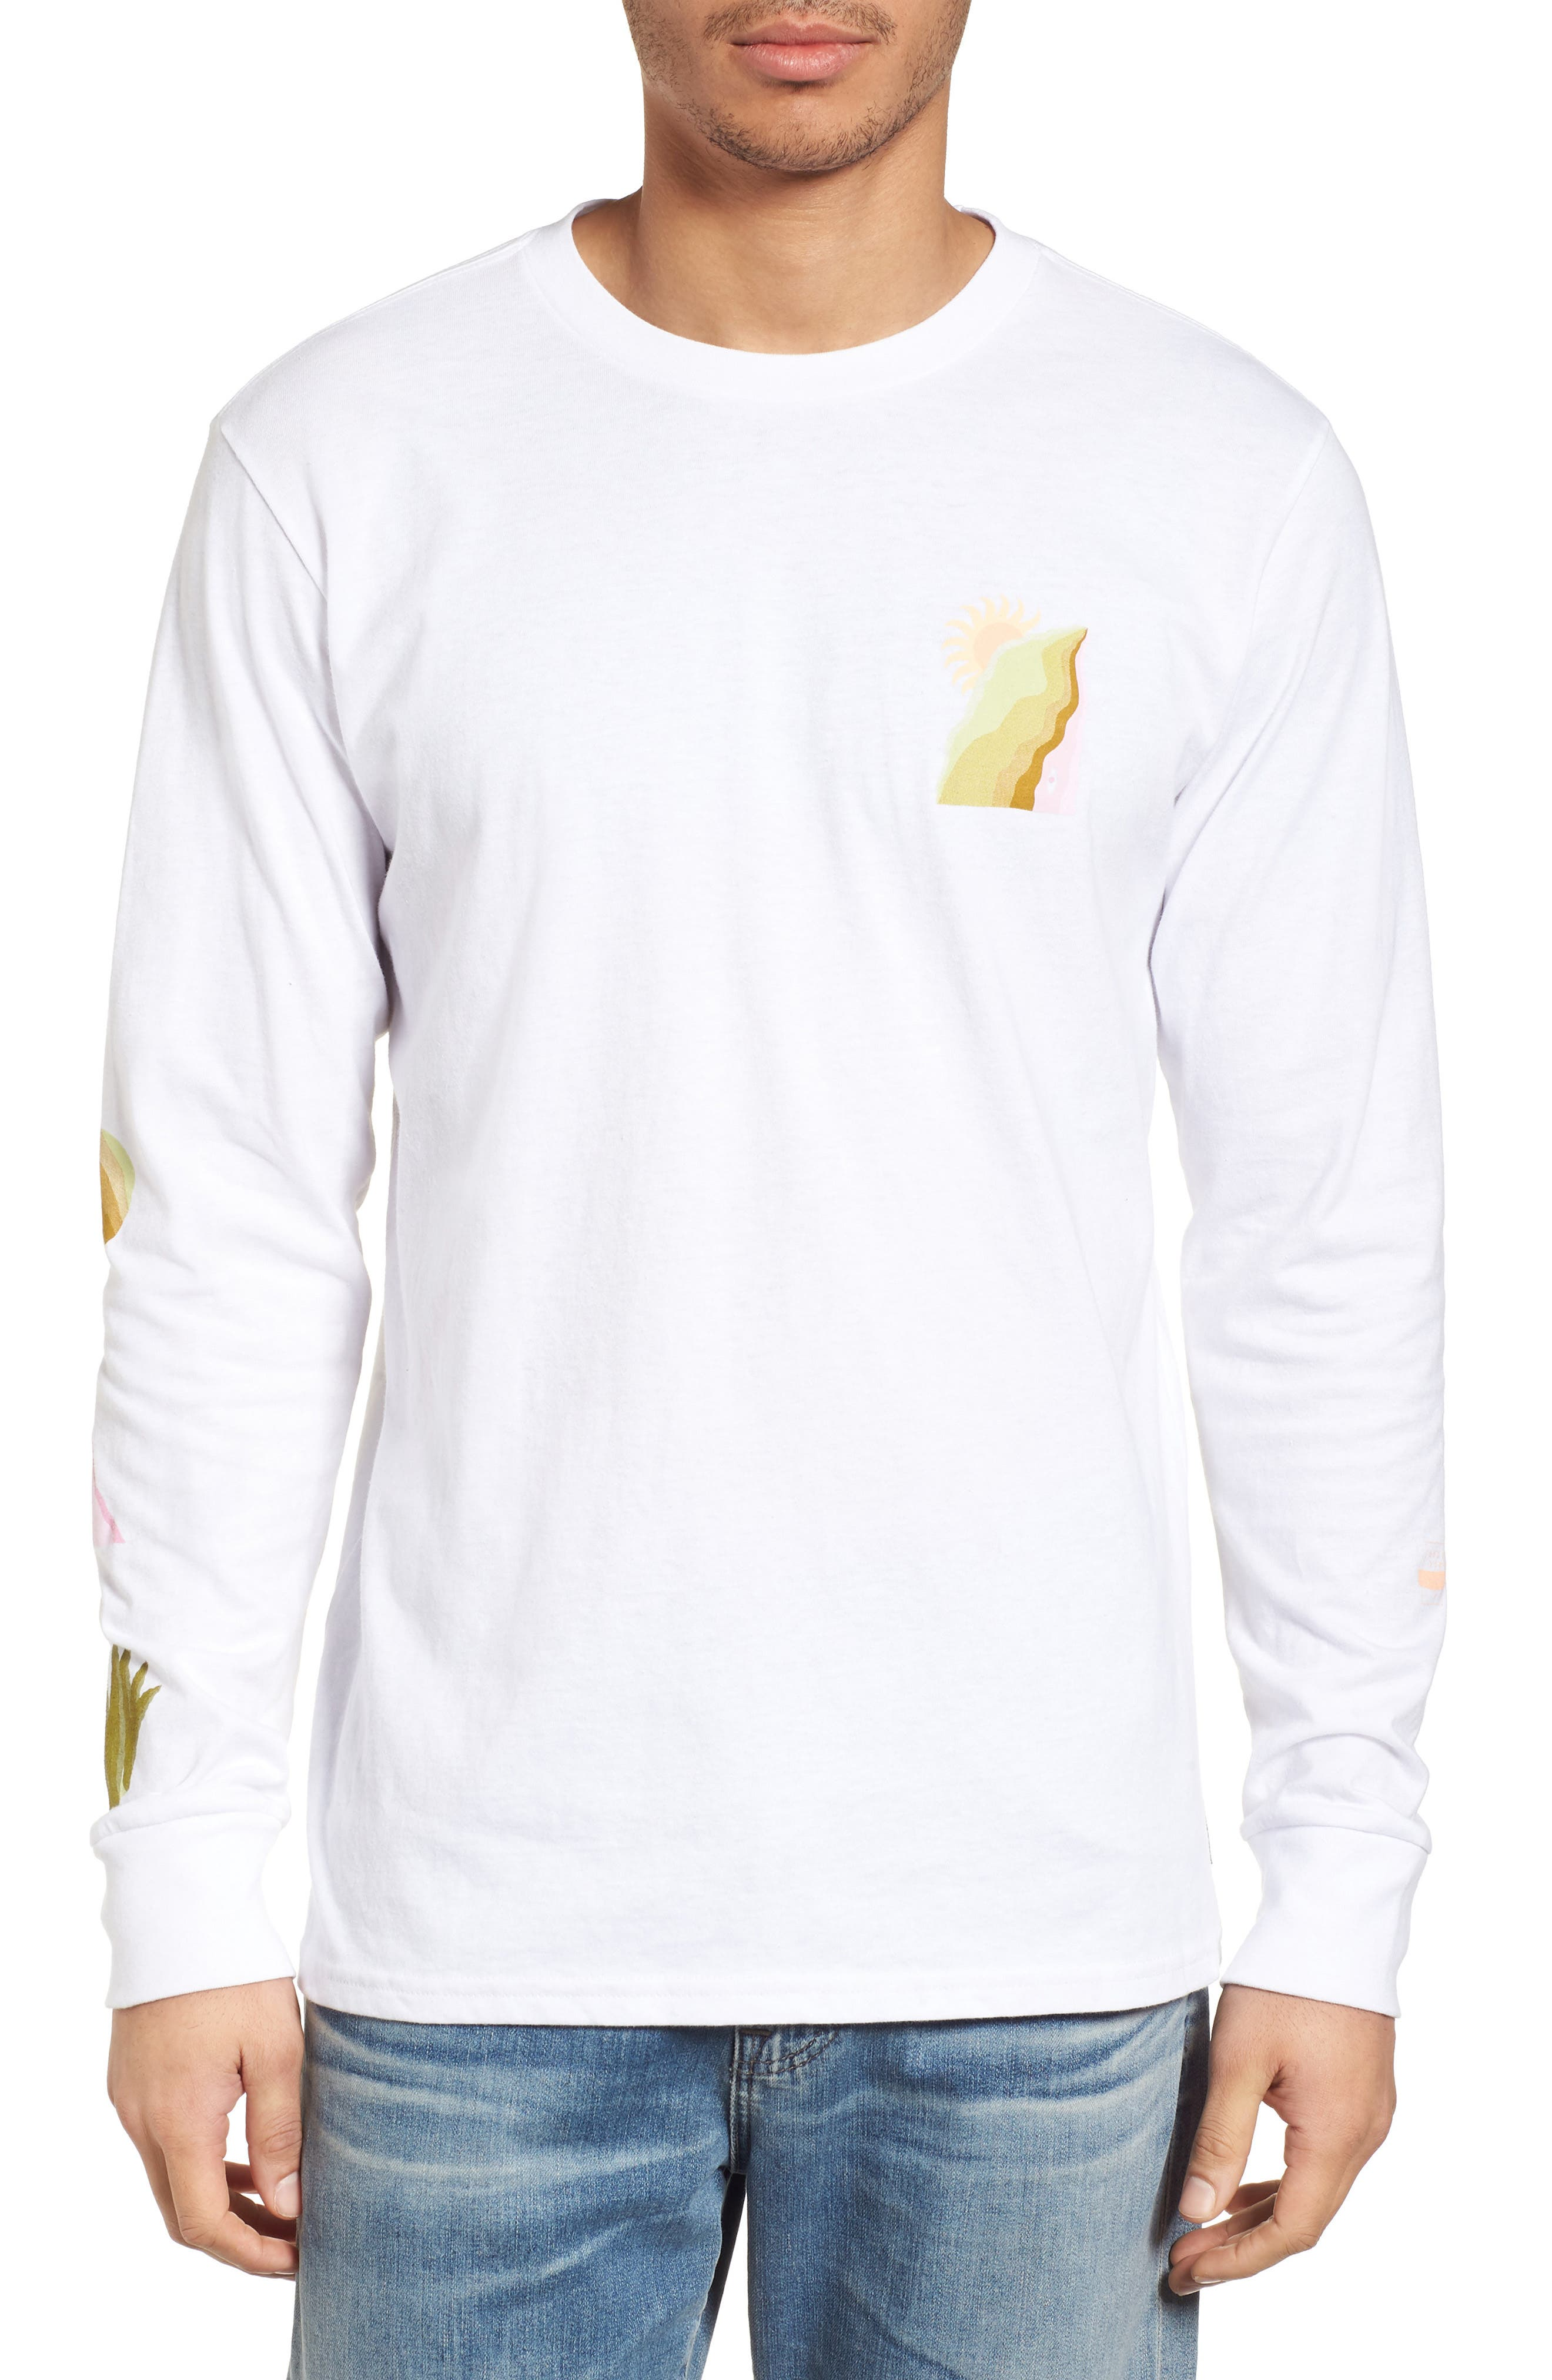 Wandering Eye Embroidered Long Sleeve T-Shirt,                             Main thumbnail 1, color,                             White